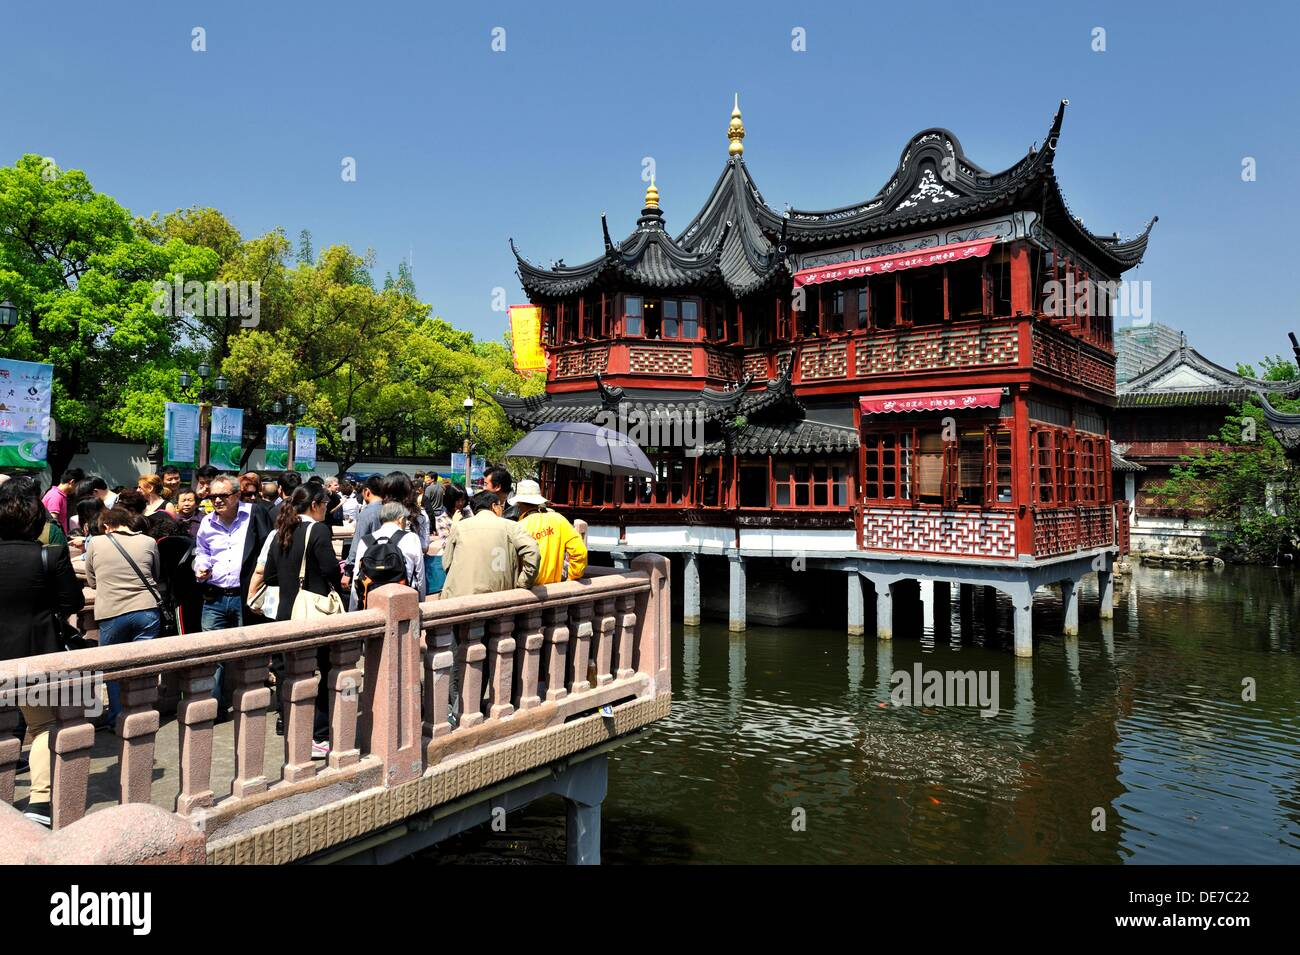 Mid Lake Pavilion Teahouse In The Style Of Ming Dynasty, Shanghai, China Good Looking